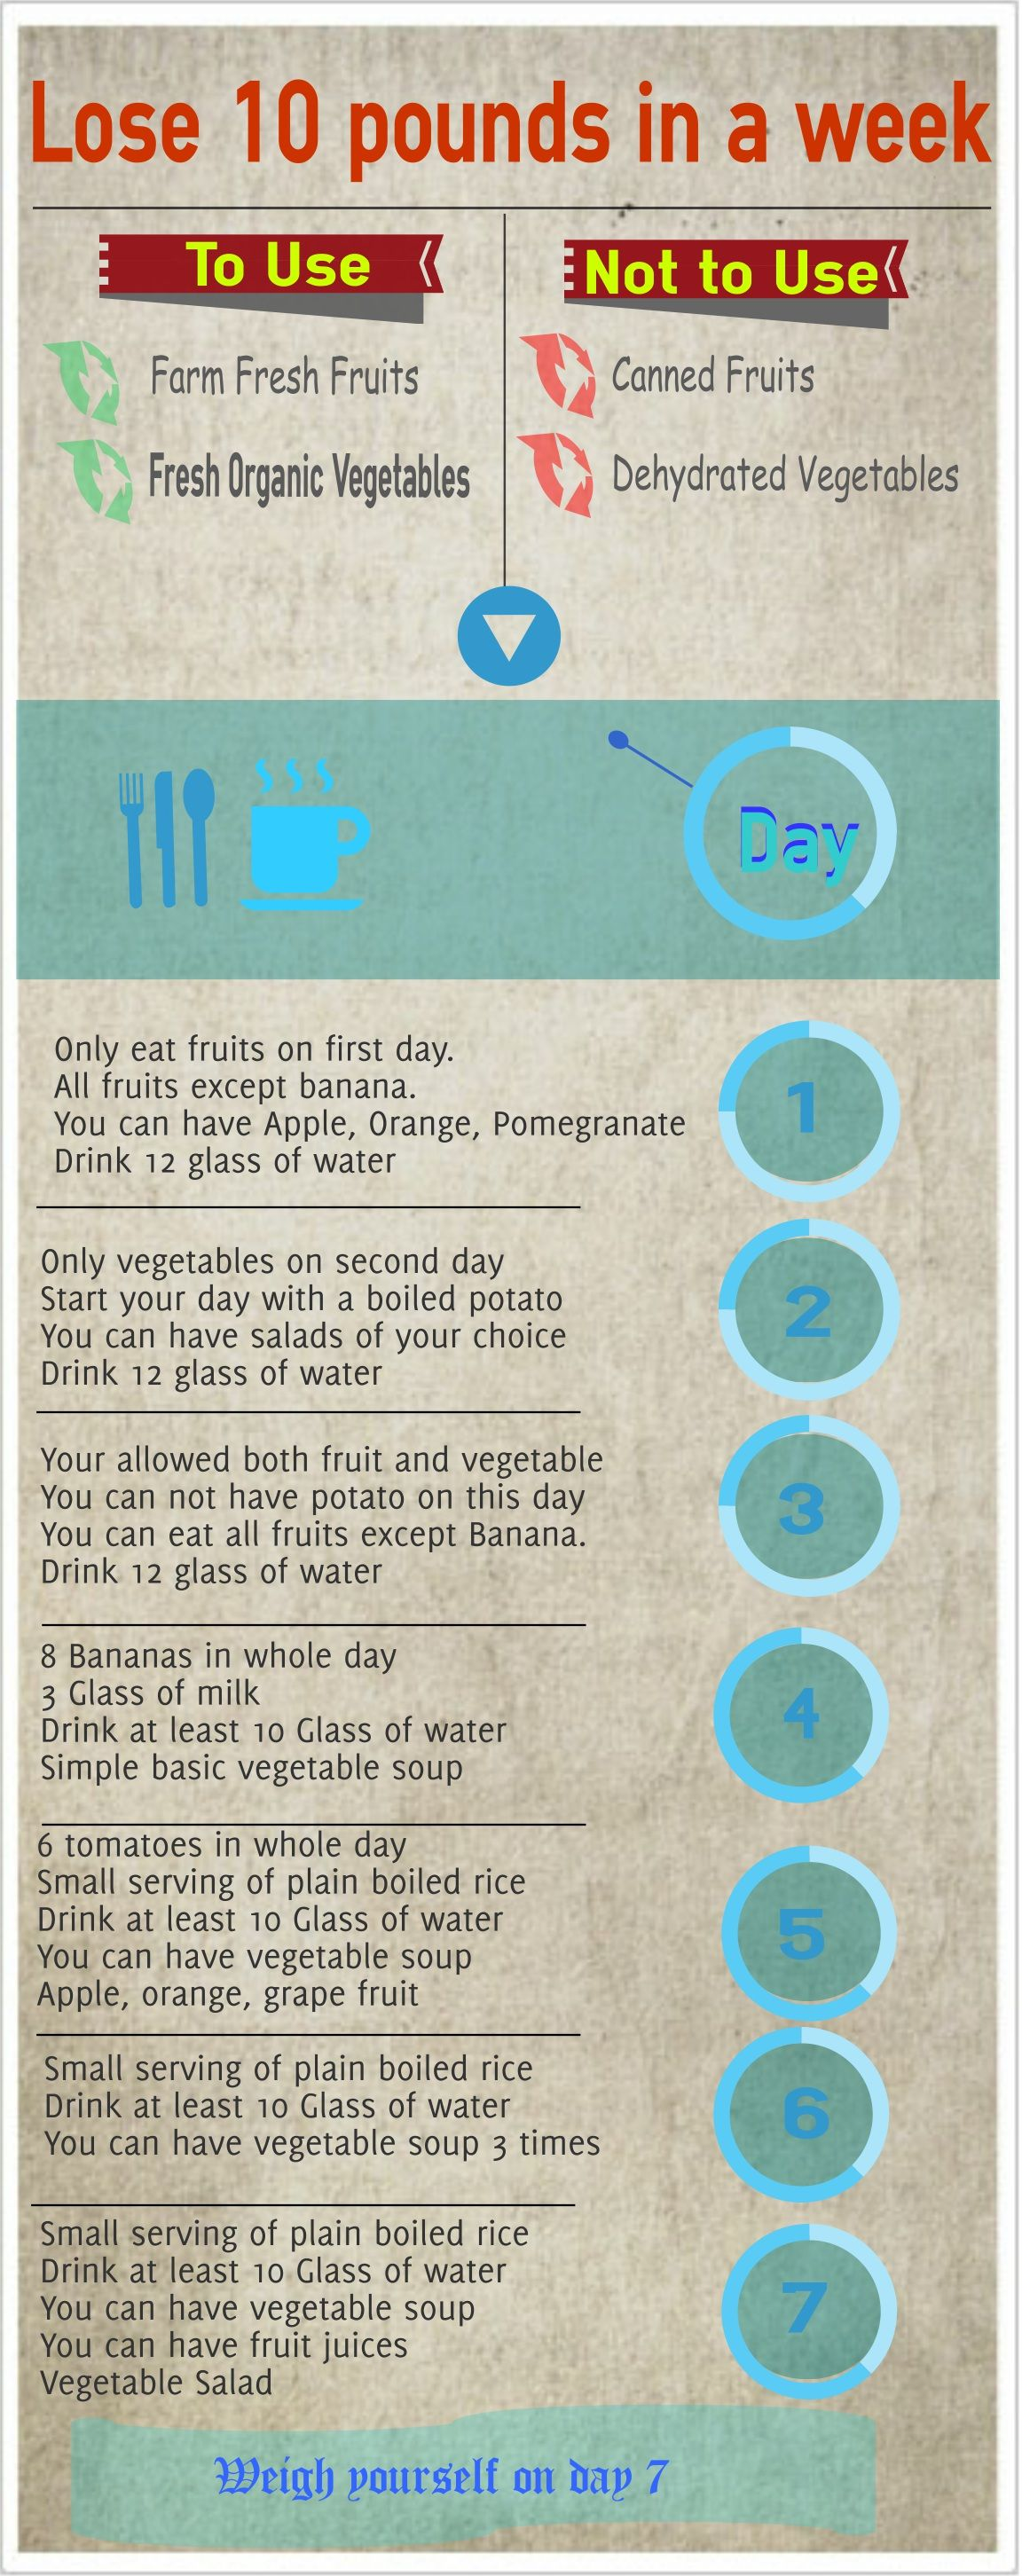 Lose 10 pounds in a week 7 day diet plan losing 10 pounds 10 lose 10 pounds in a week 7 day diet plan nvjuhfo Image collections